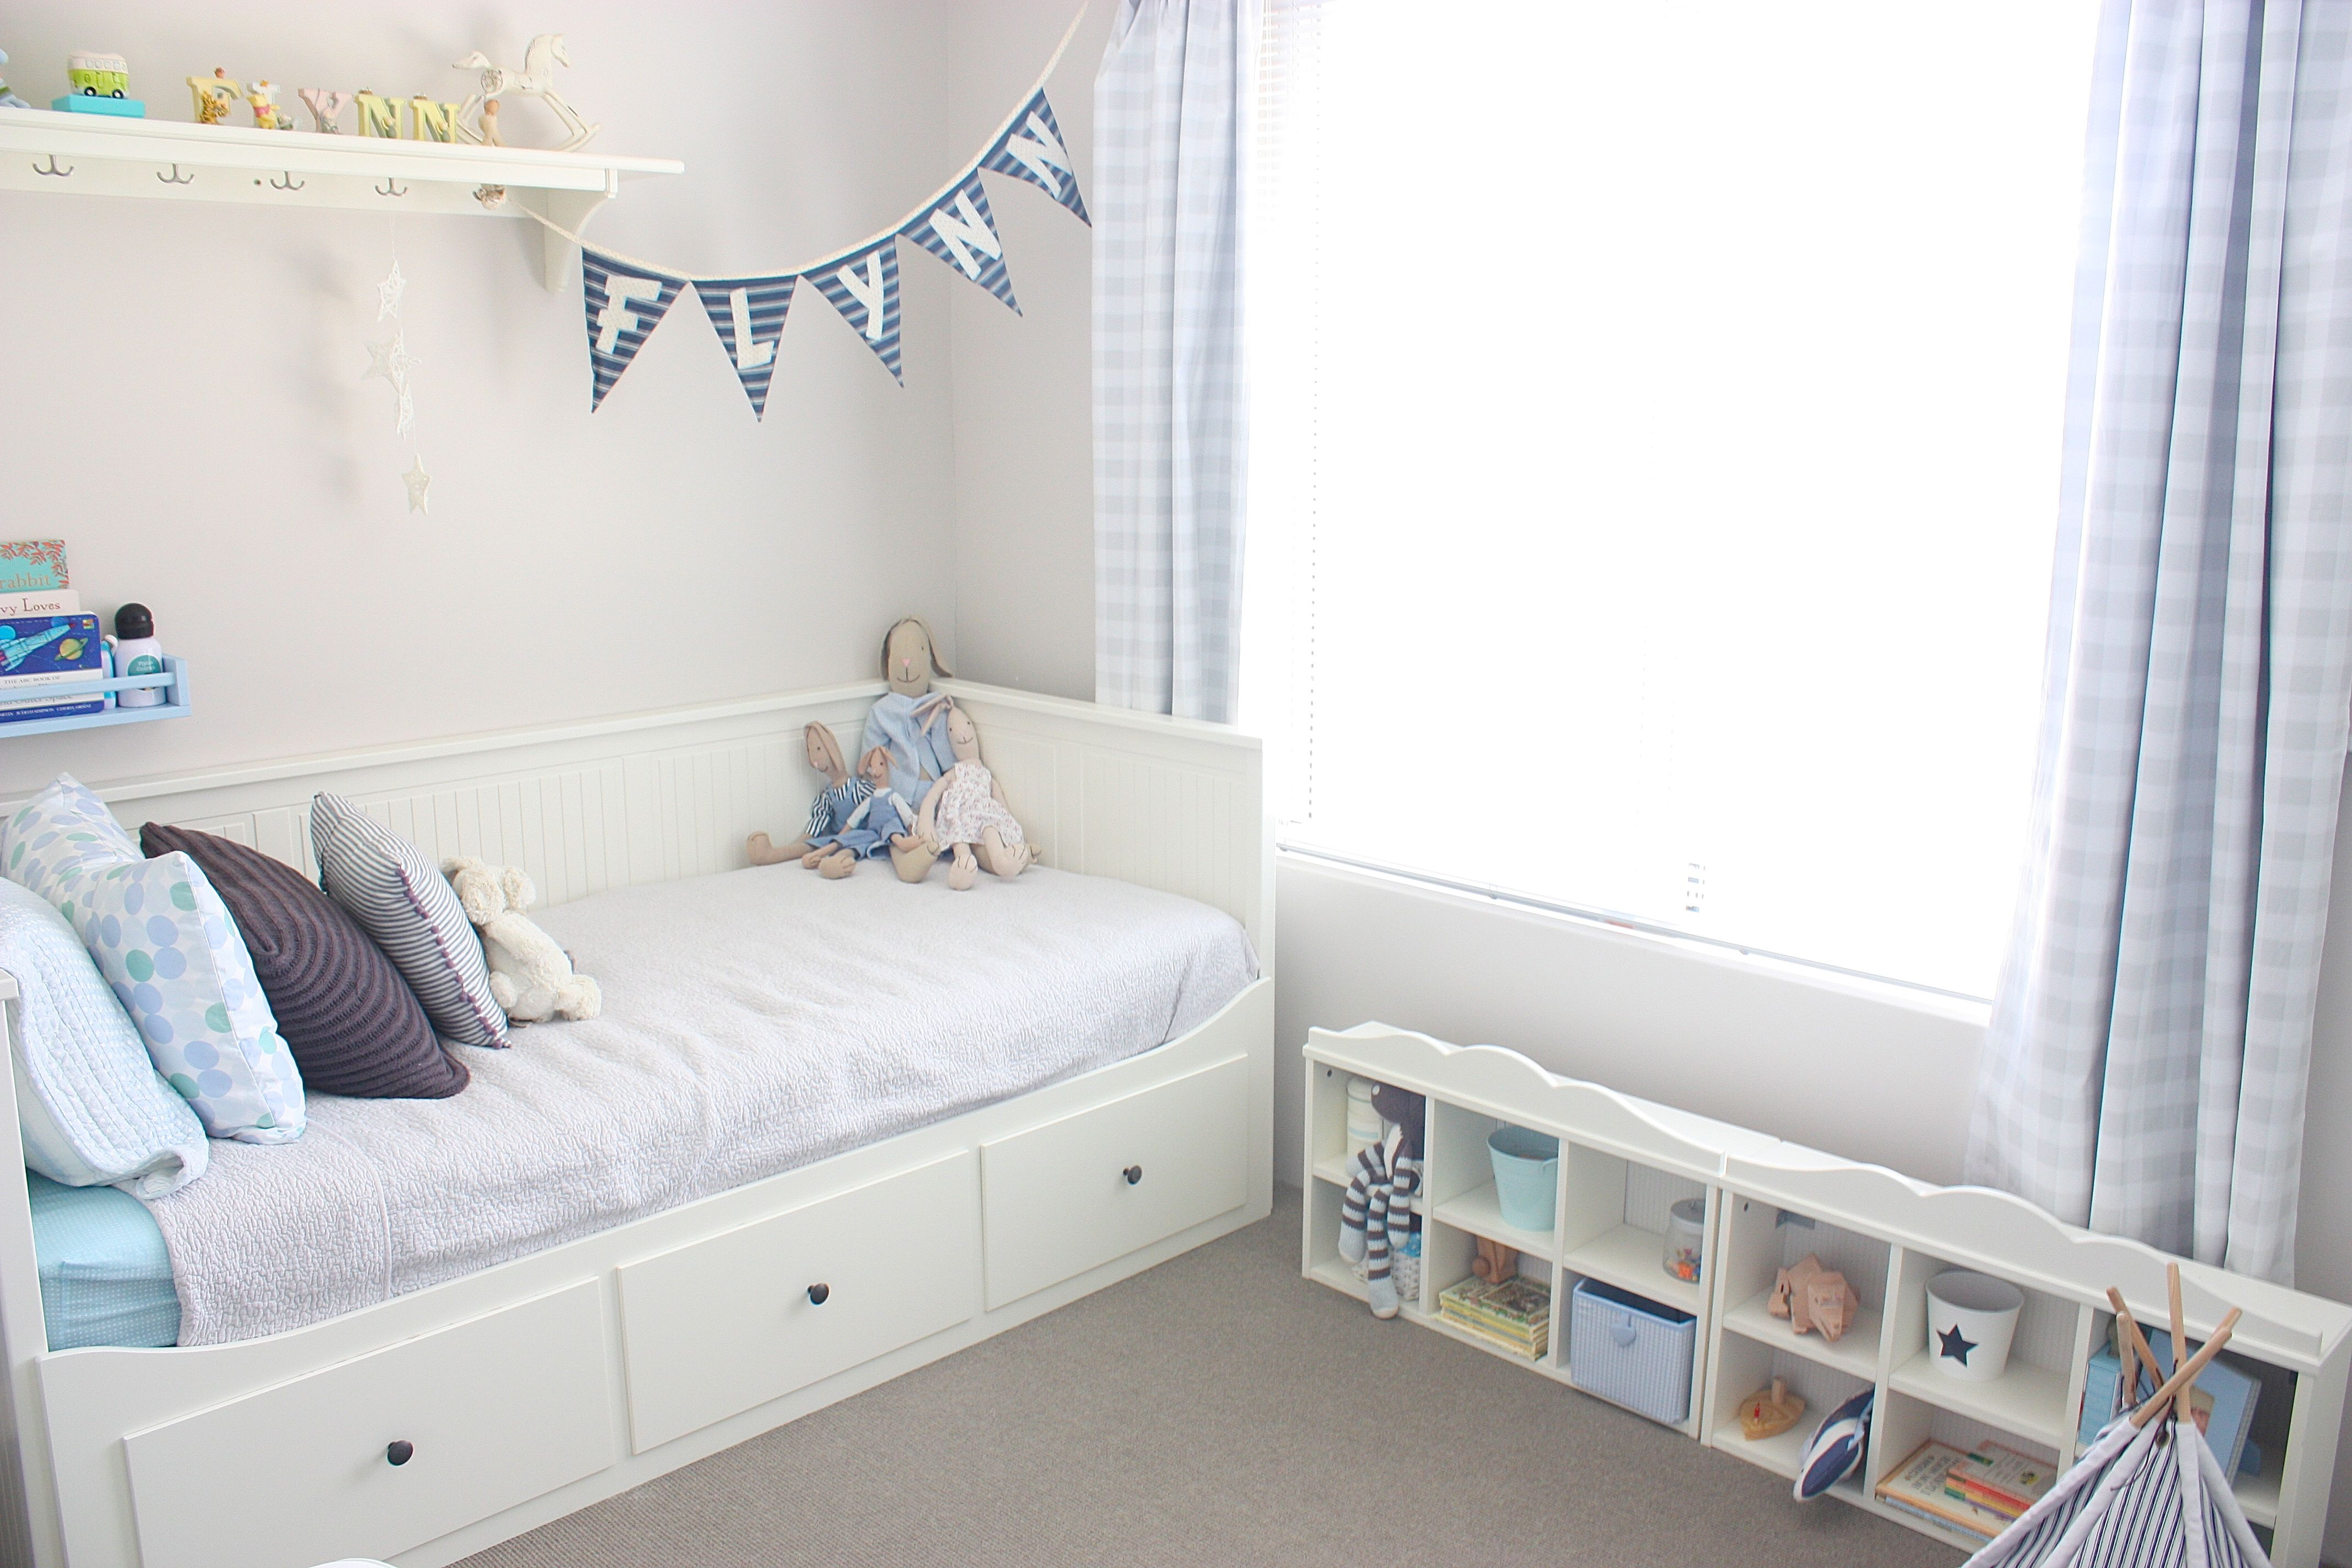 Boys Bedroom   Love The Blue Ikea Spice Rack For Drink Bottle And Books ·  Dream Home DesignMy ... Part 93